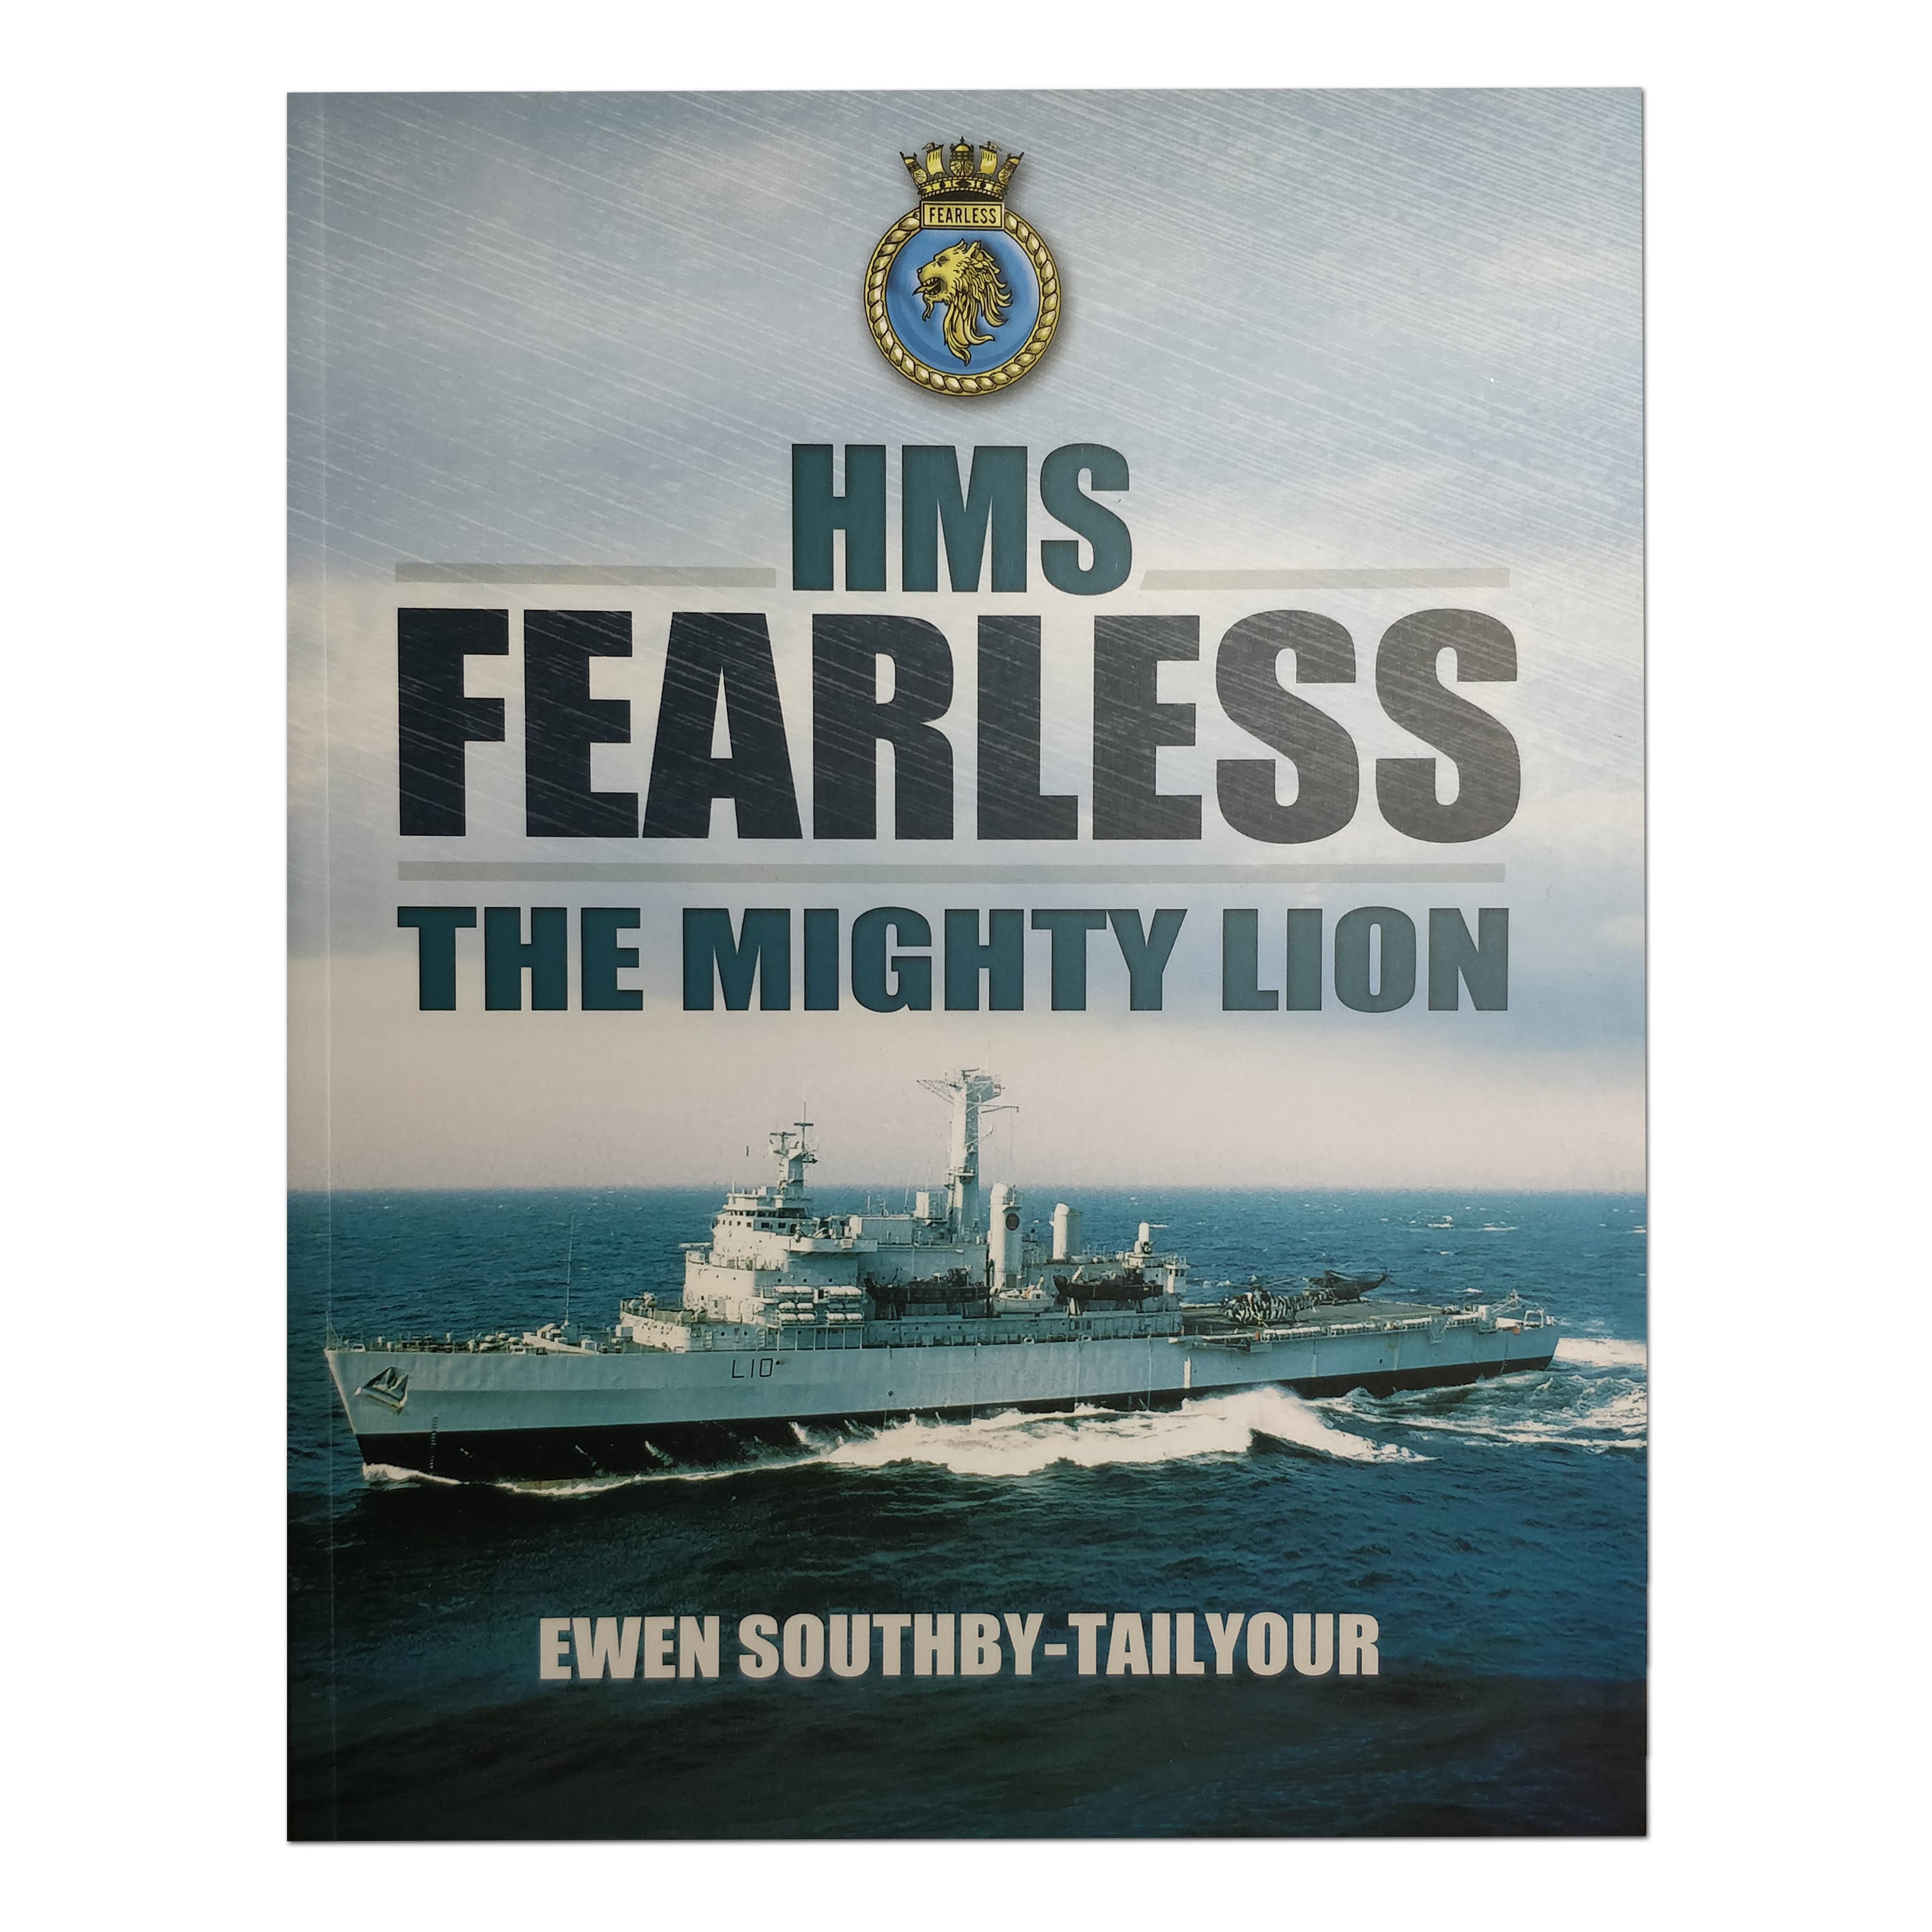 HMS Fearless (Mighty Lion)